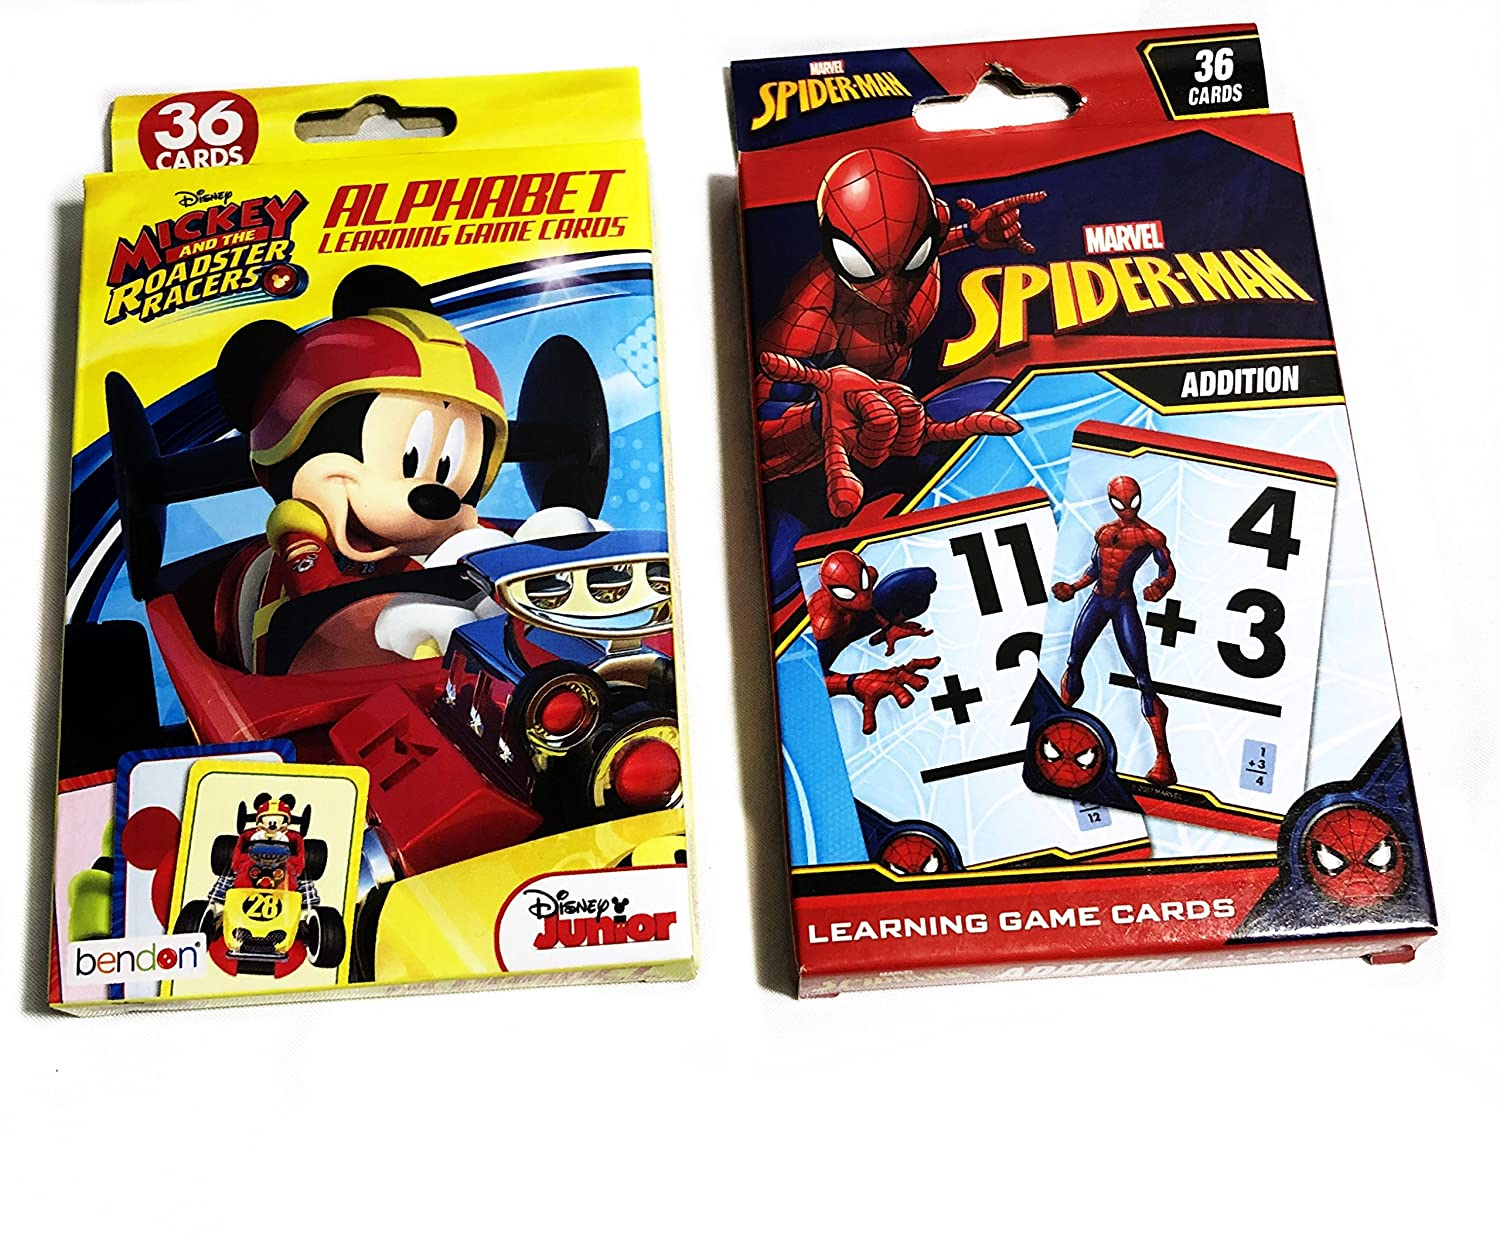 Jumbo Kids Cards Spiderman Mickey Mouse The Roadsters Racers Learning Game Cards | 2 Pack | 36 Cards In Each Pack| Addition Alphabet Cards